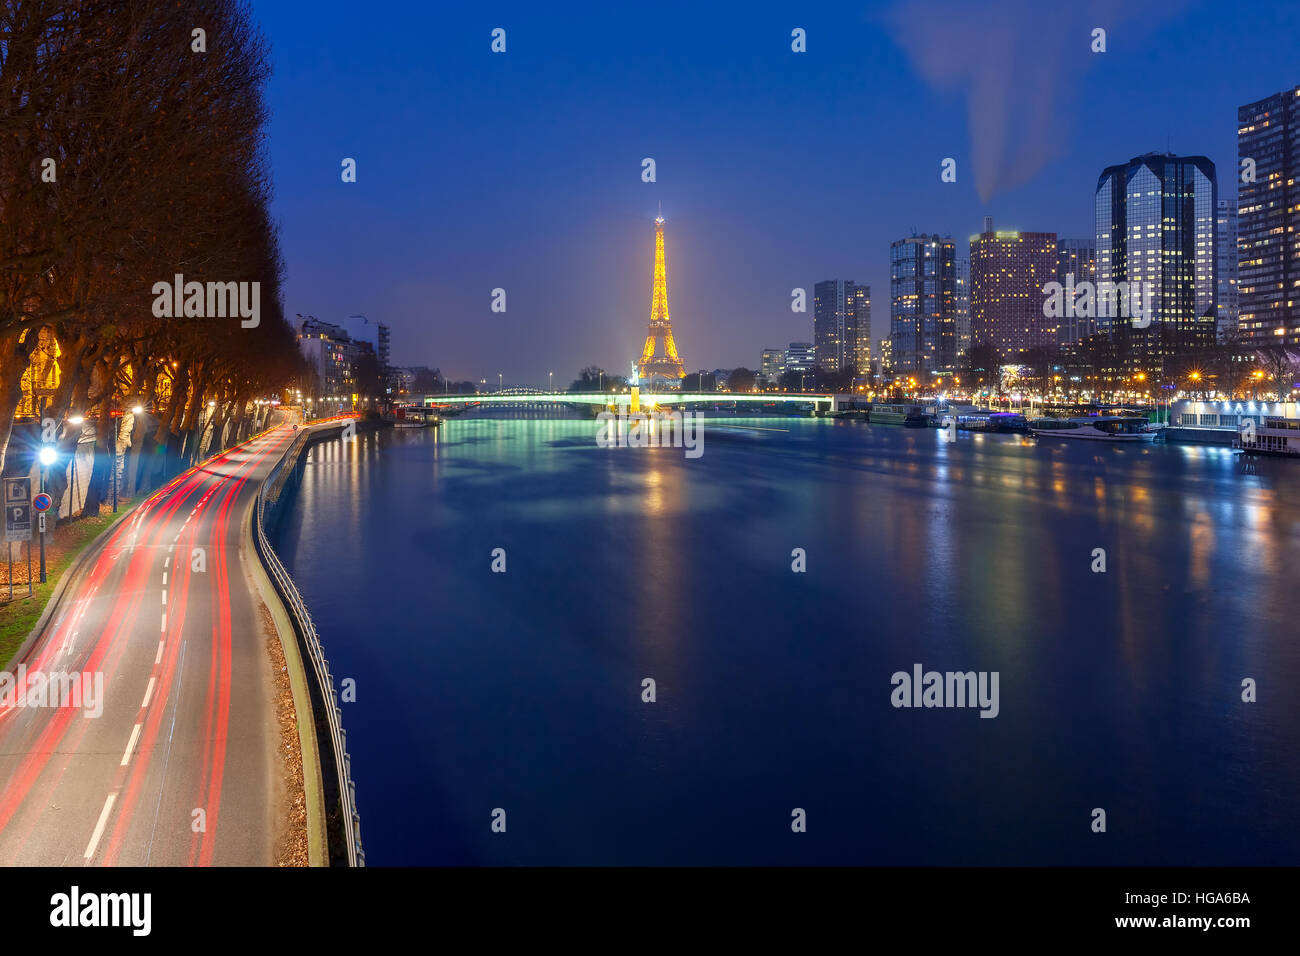 Panorama with Eiffel tower at night, Paris France Stock Photo